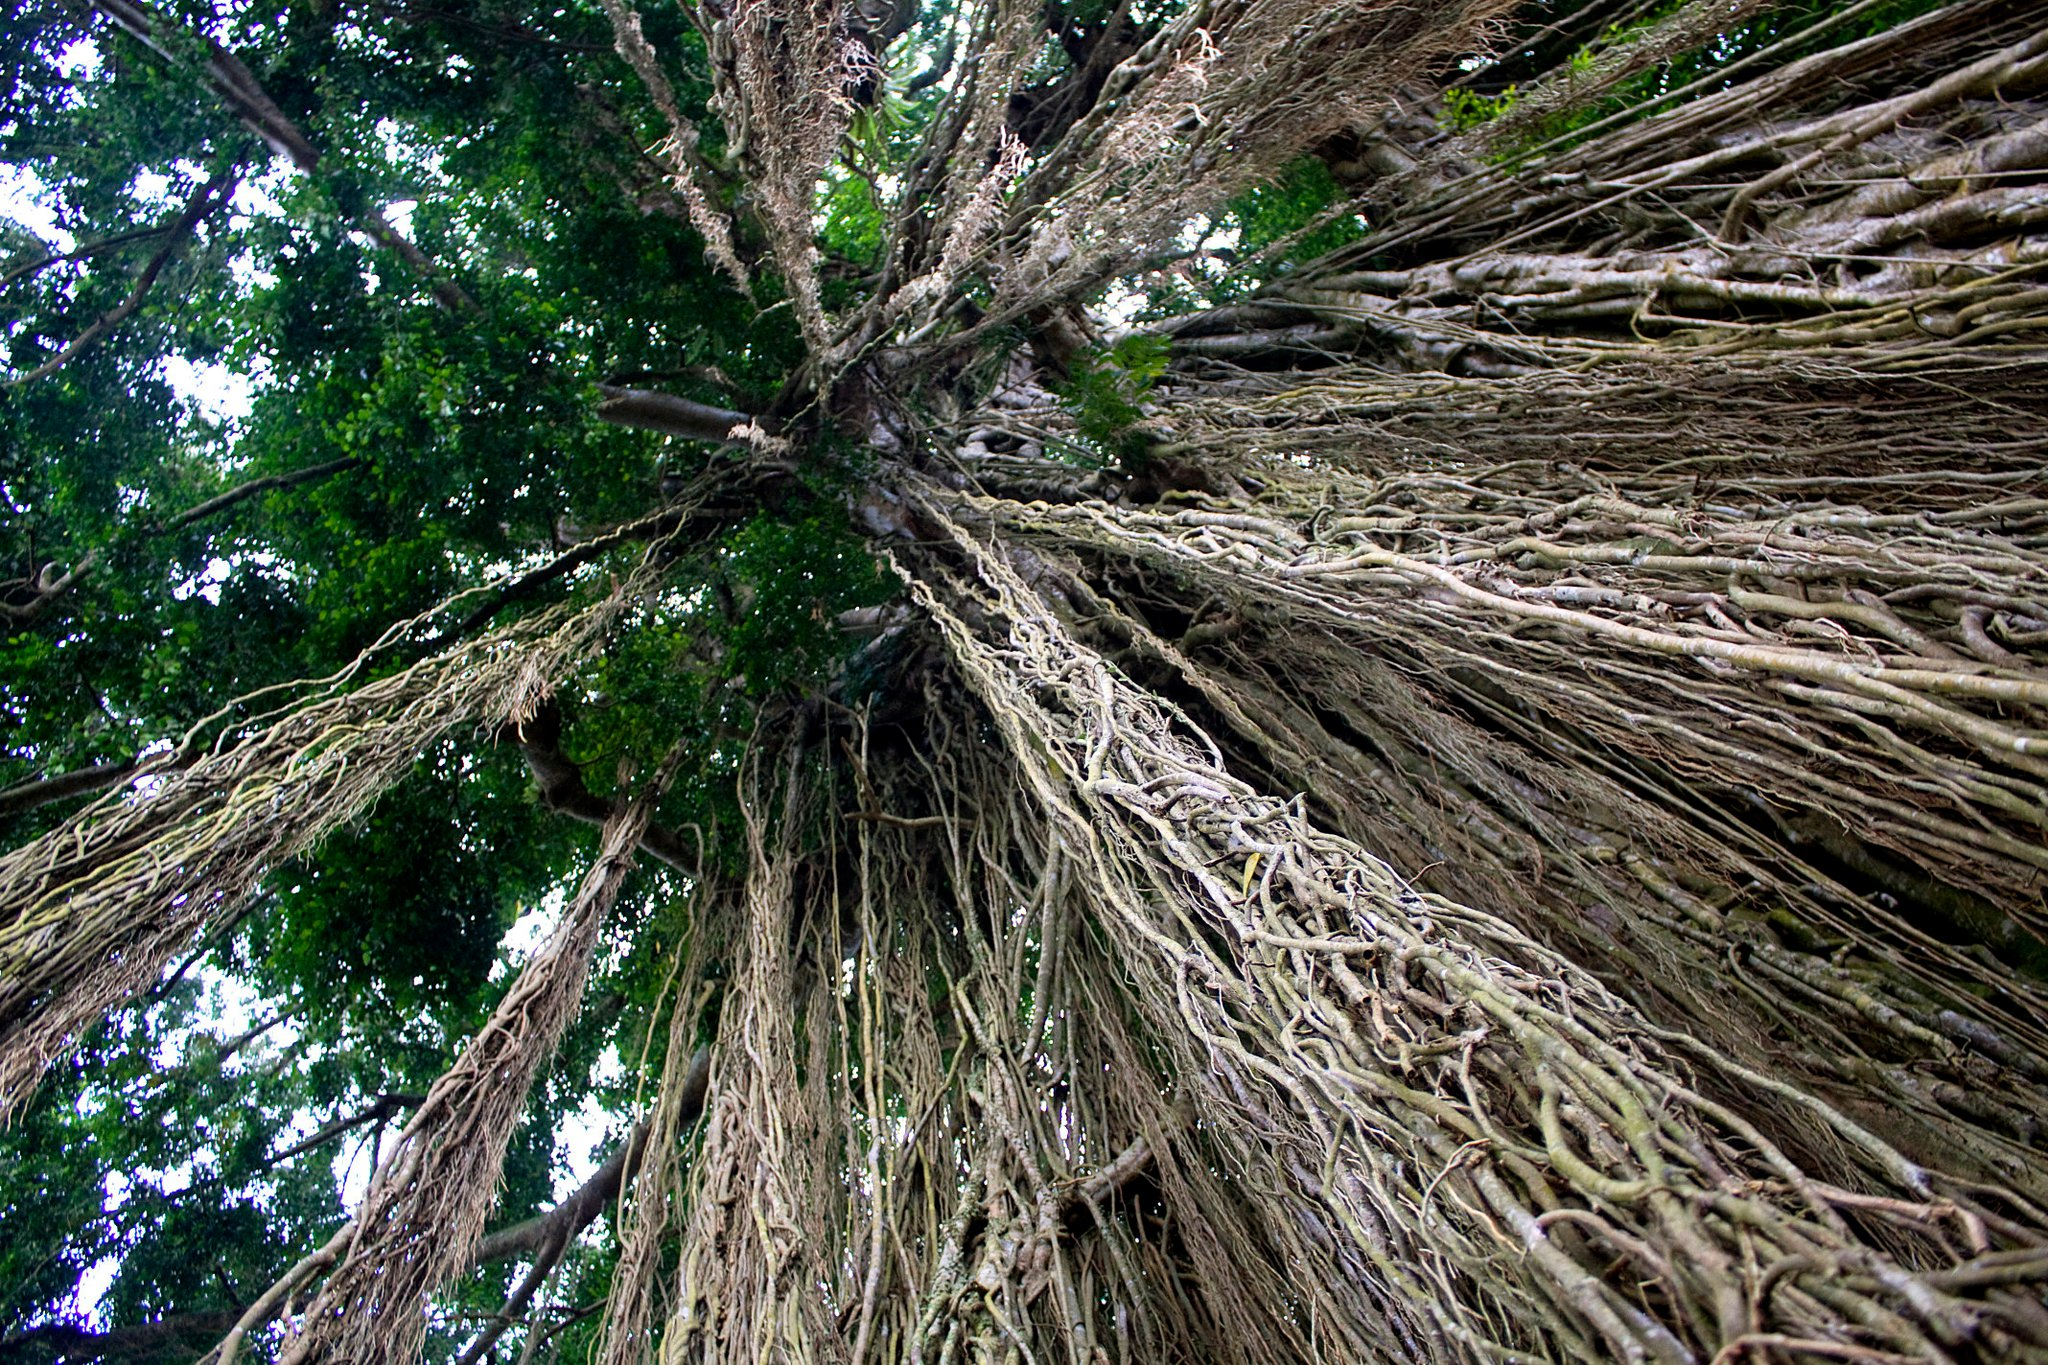 Banyan trees are considered sacred in Bali